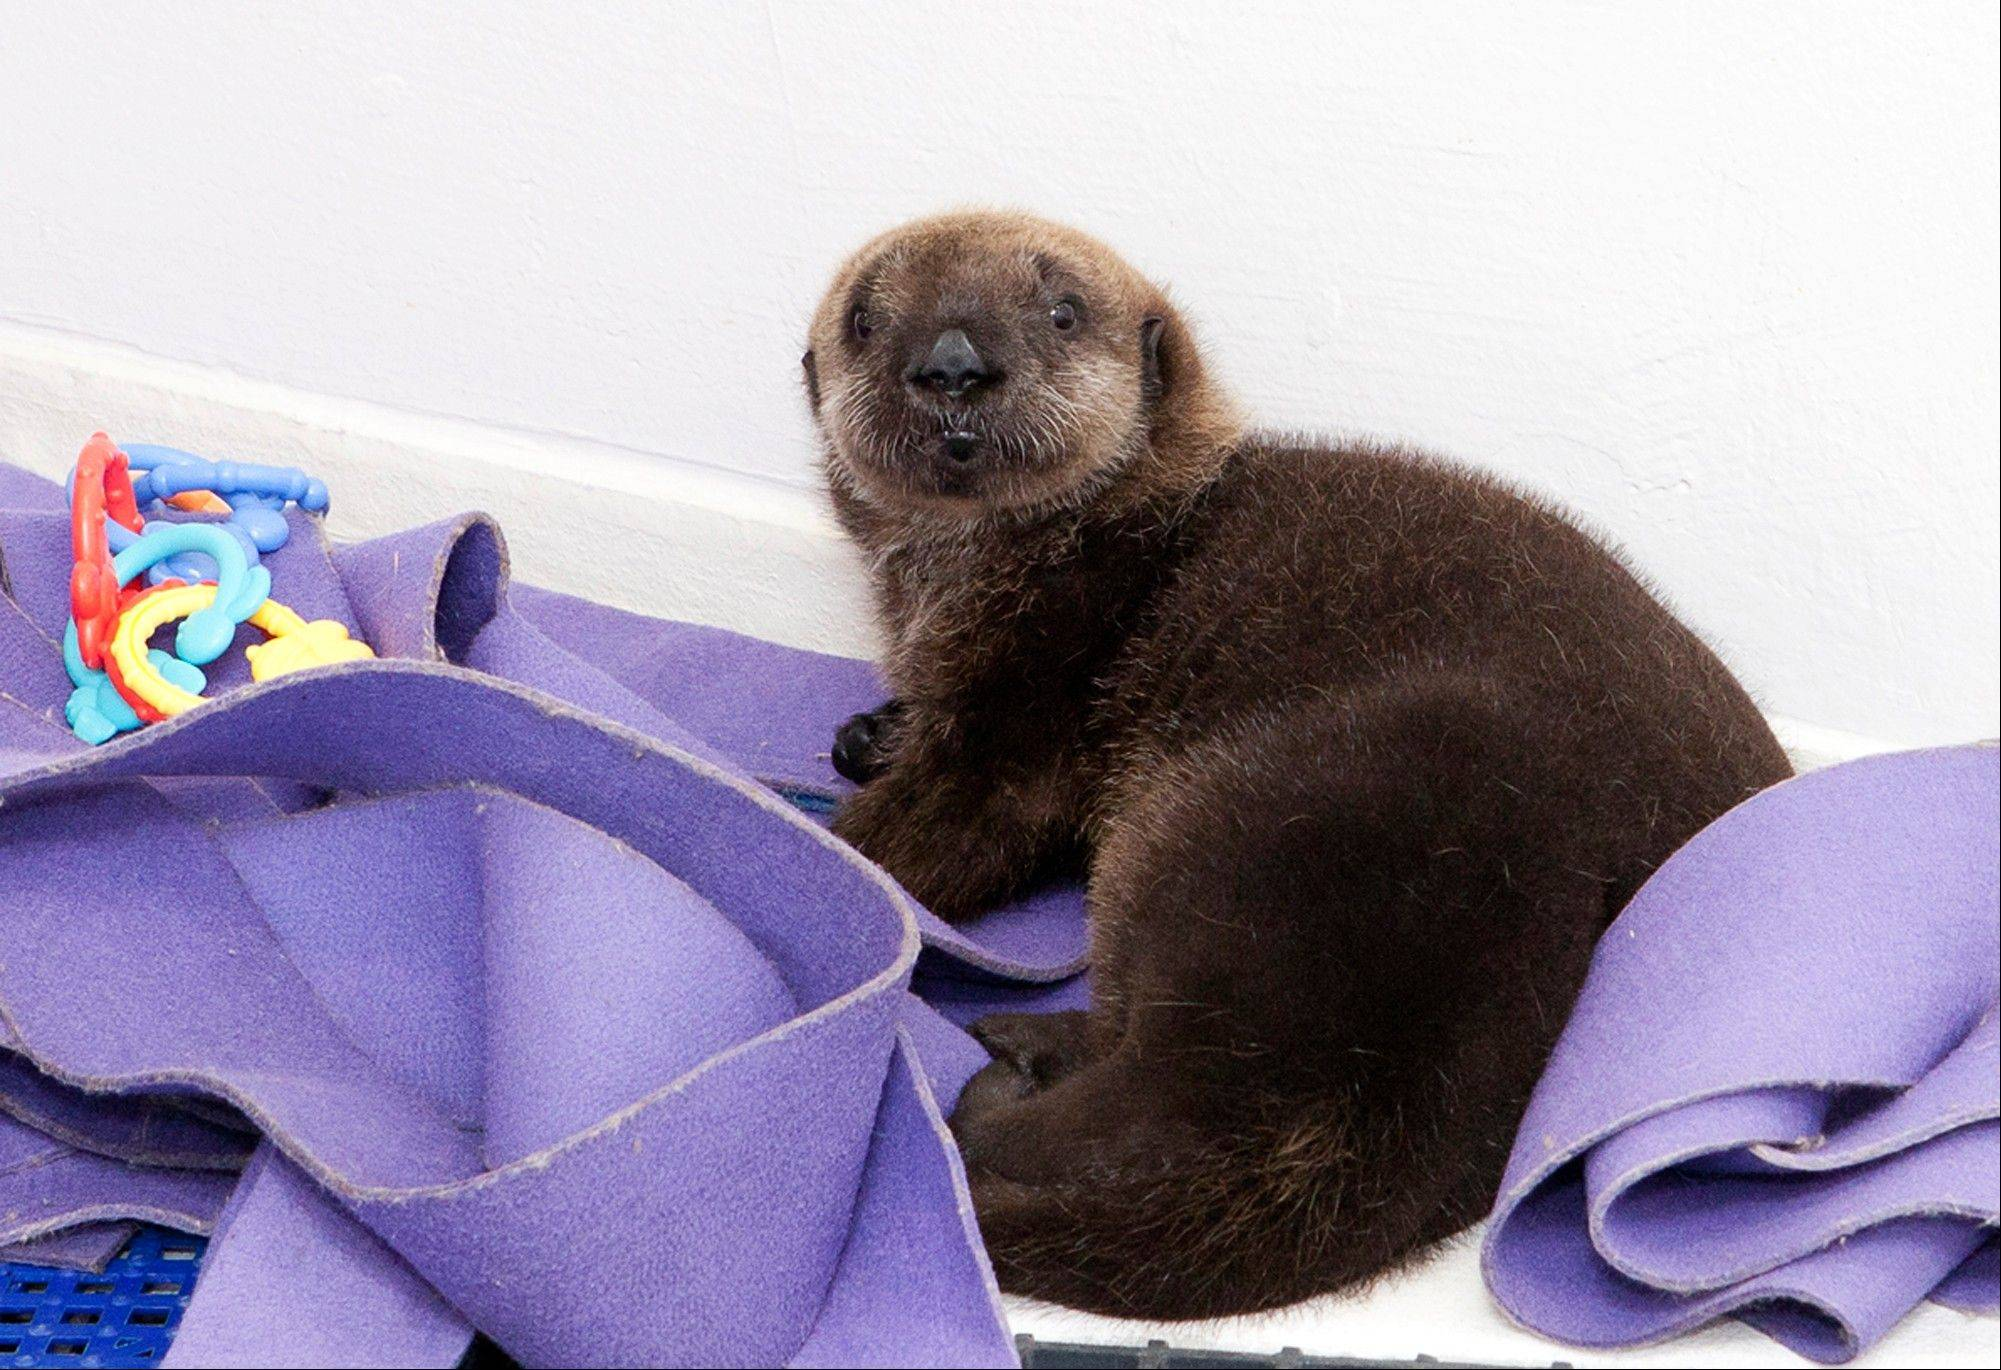 This female otter pup was found stranded near Cayucos, Calif., in December. She is staying at the Shedd's Regenstein Sea Otter Nursery, where she is receiving 24-hour care.